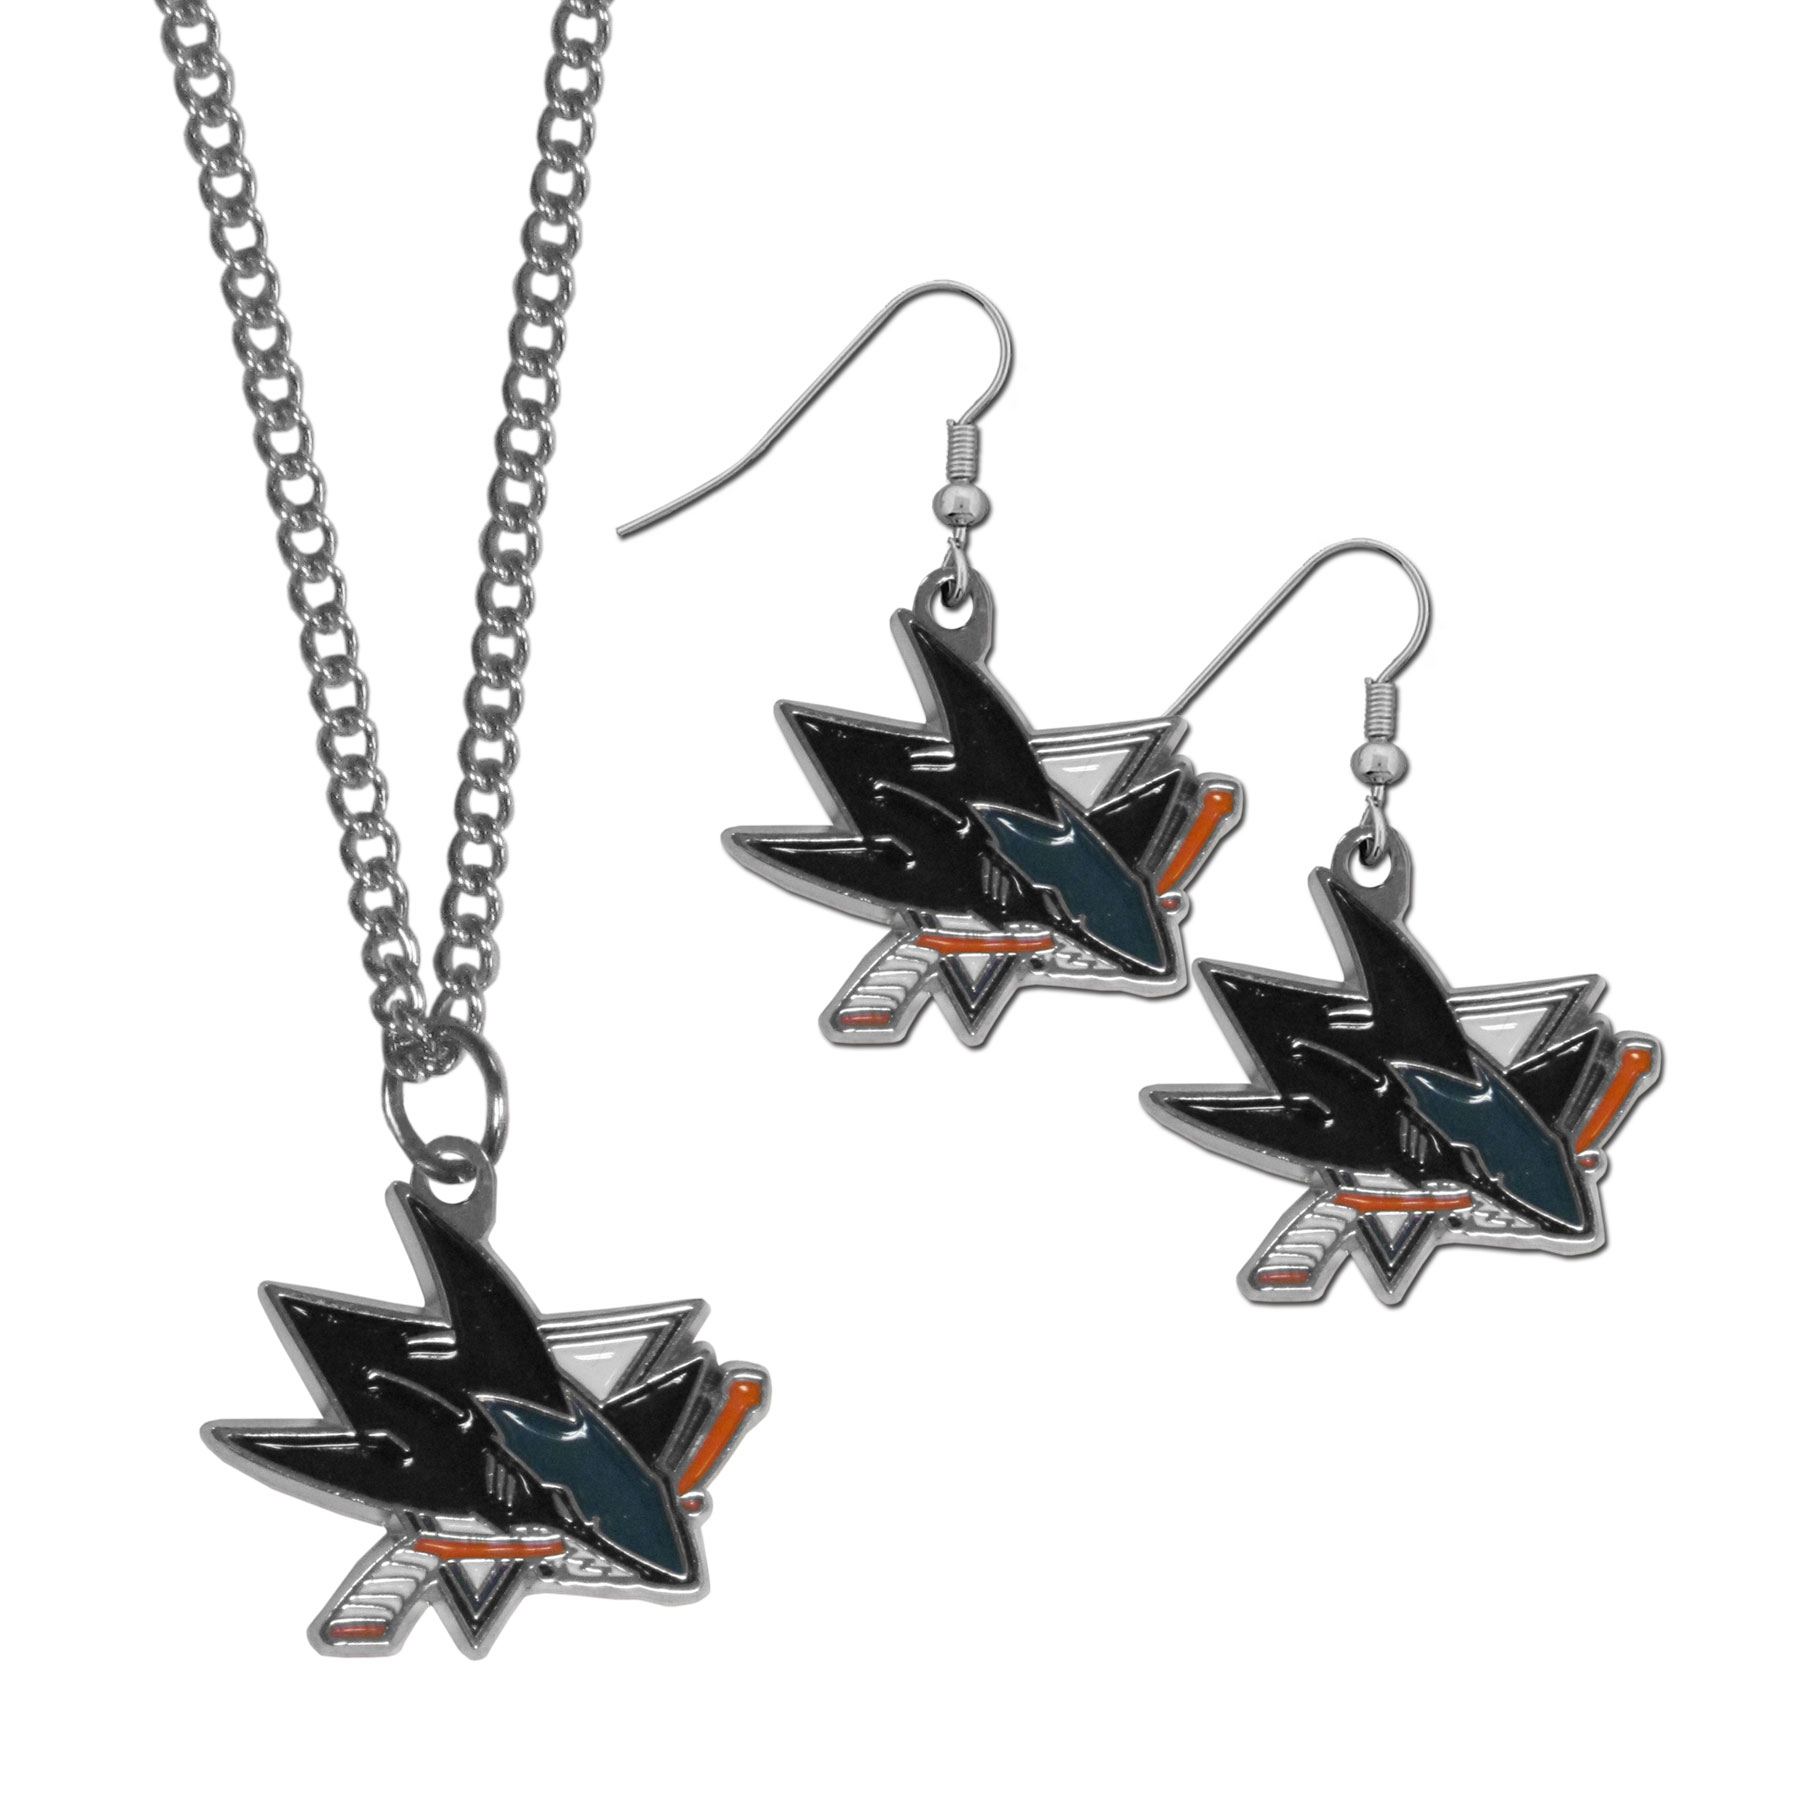 San Jose Sharks® Dangle Earrings and Chain Necklace Set - This classic jewelry set contains are most popular San Jose Sharks® dangle earrings and 22 inch chain necklace. The trendy, dangle earrings are lightweight and feature a fully cast metal team charm with enameled team colors. The matching necklace completes this fashion forward combo and is a spirited set that is perfect for game day but nice enough for everyday.